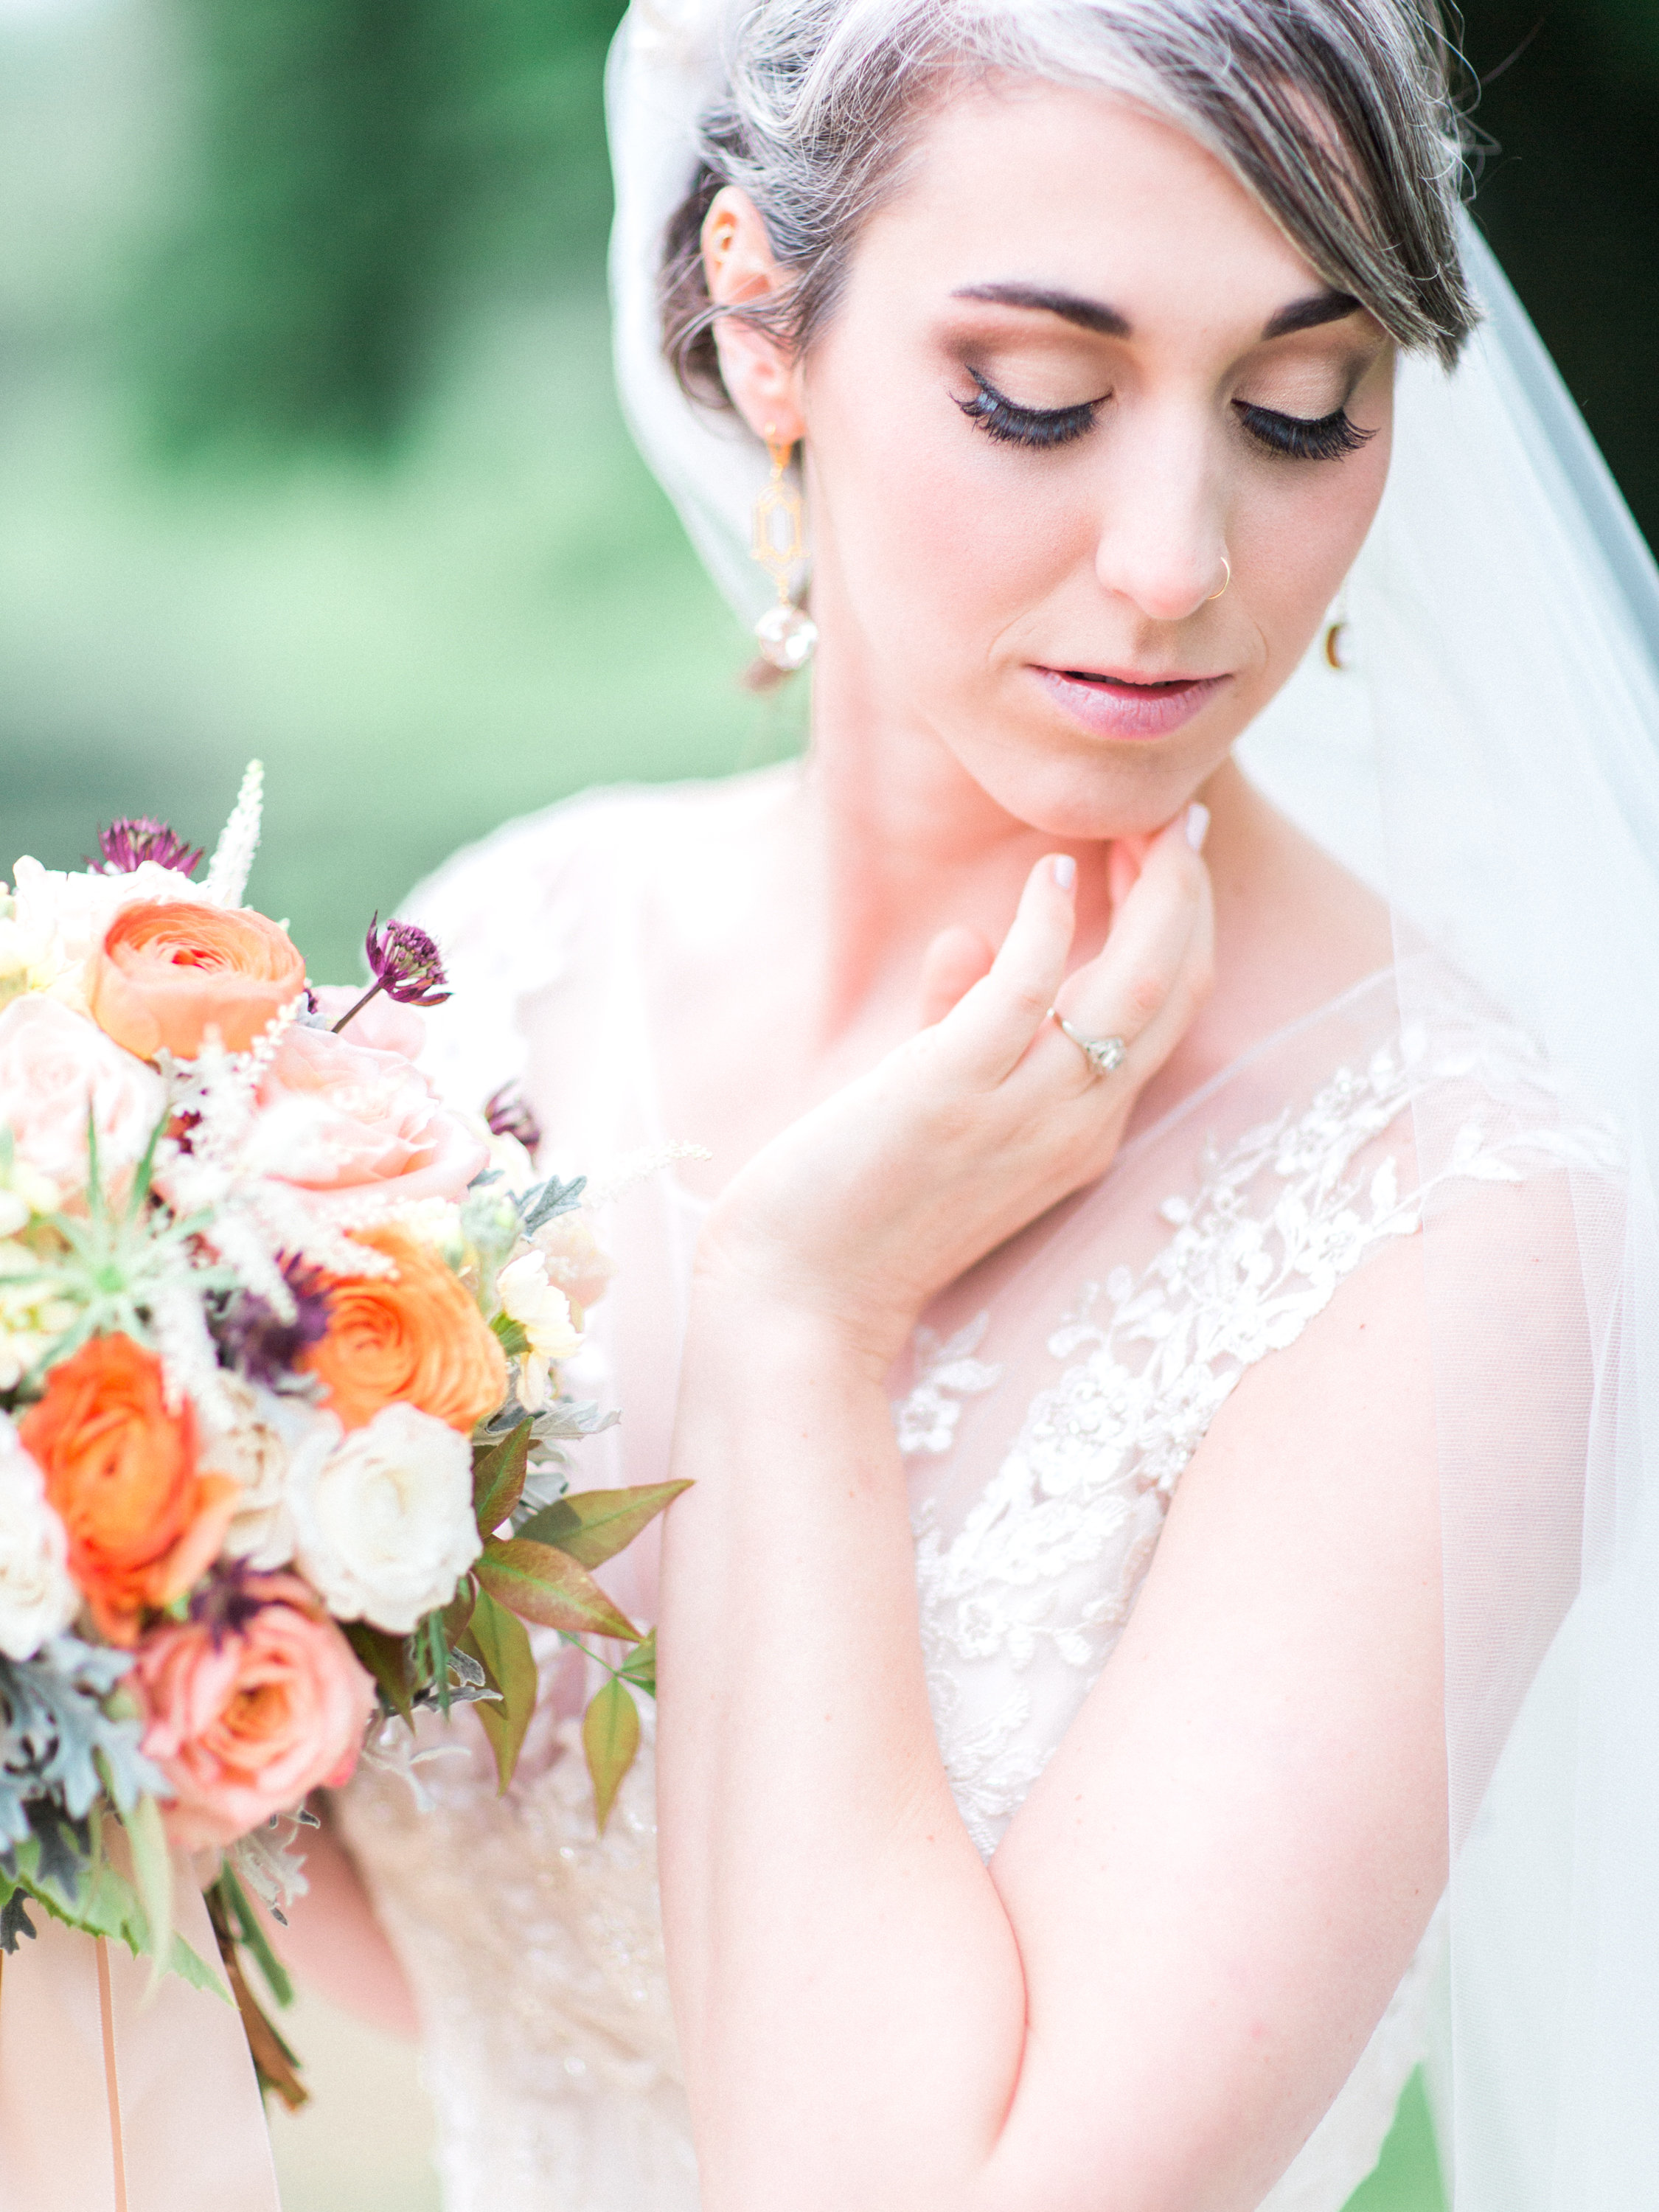 Bridal Portrait by Rebekah Emily at Rixey Manor